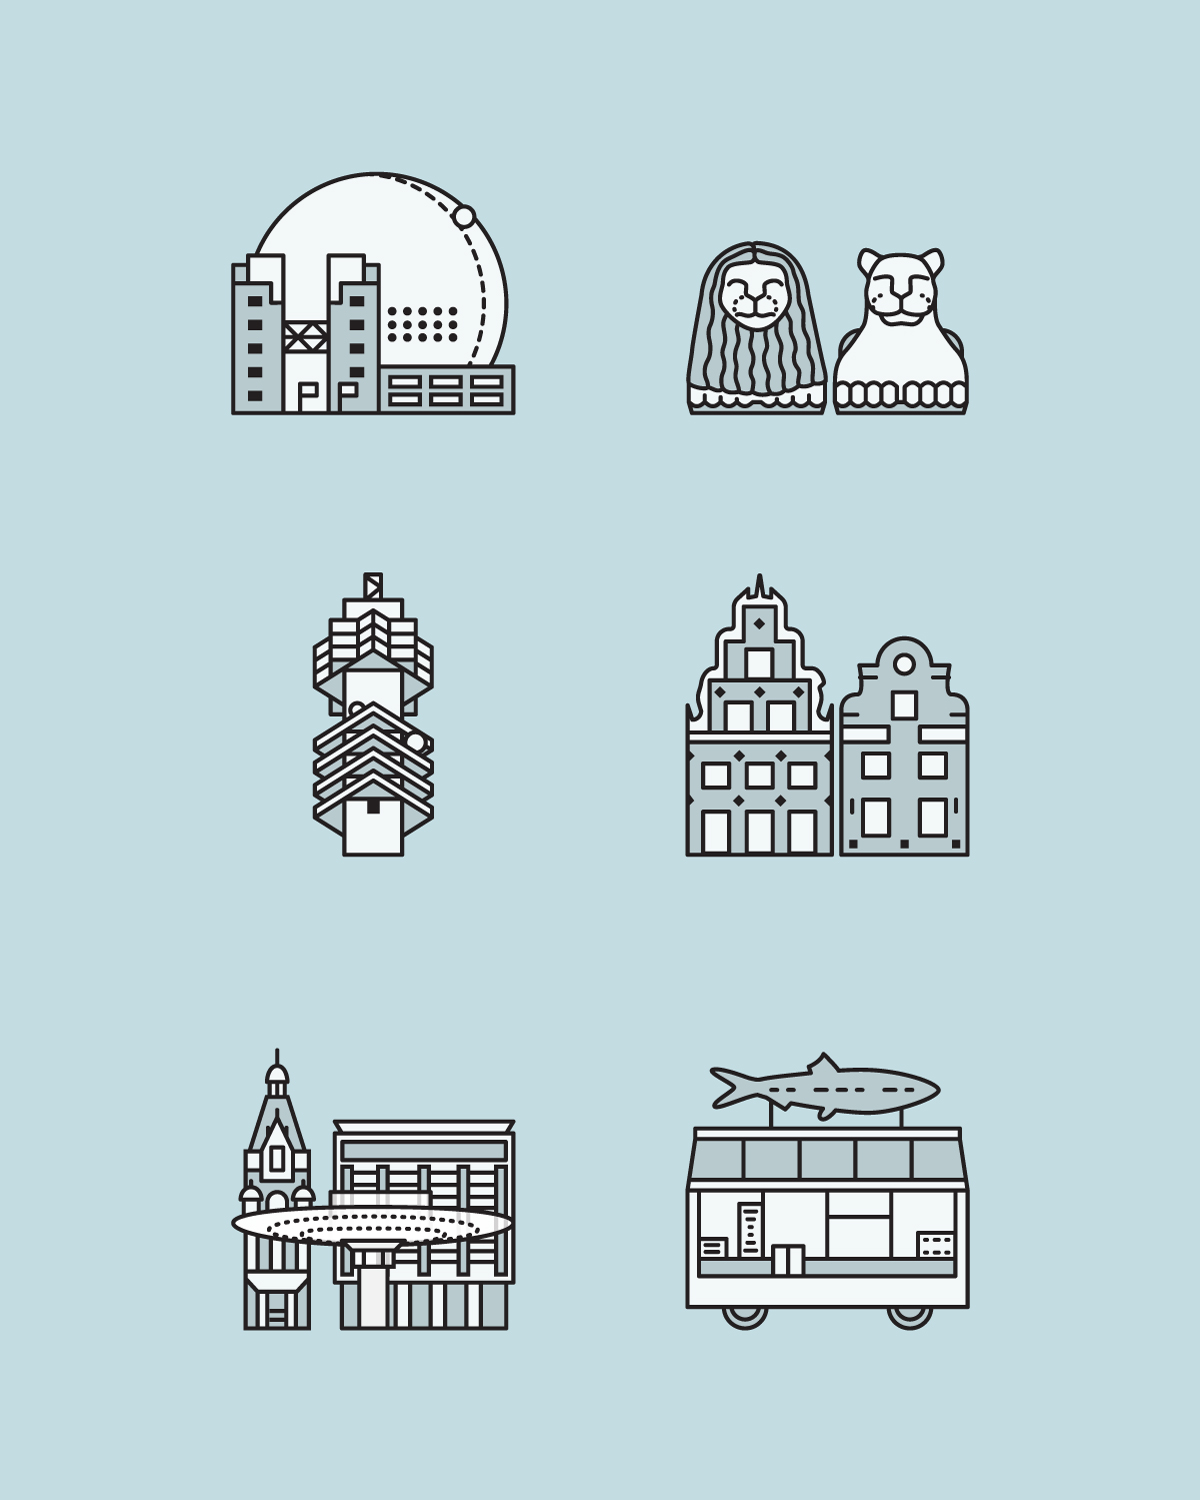 A series of minimalist icons depicting some iconic buildings and objects in Stockholm.